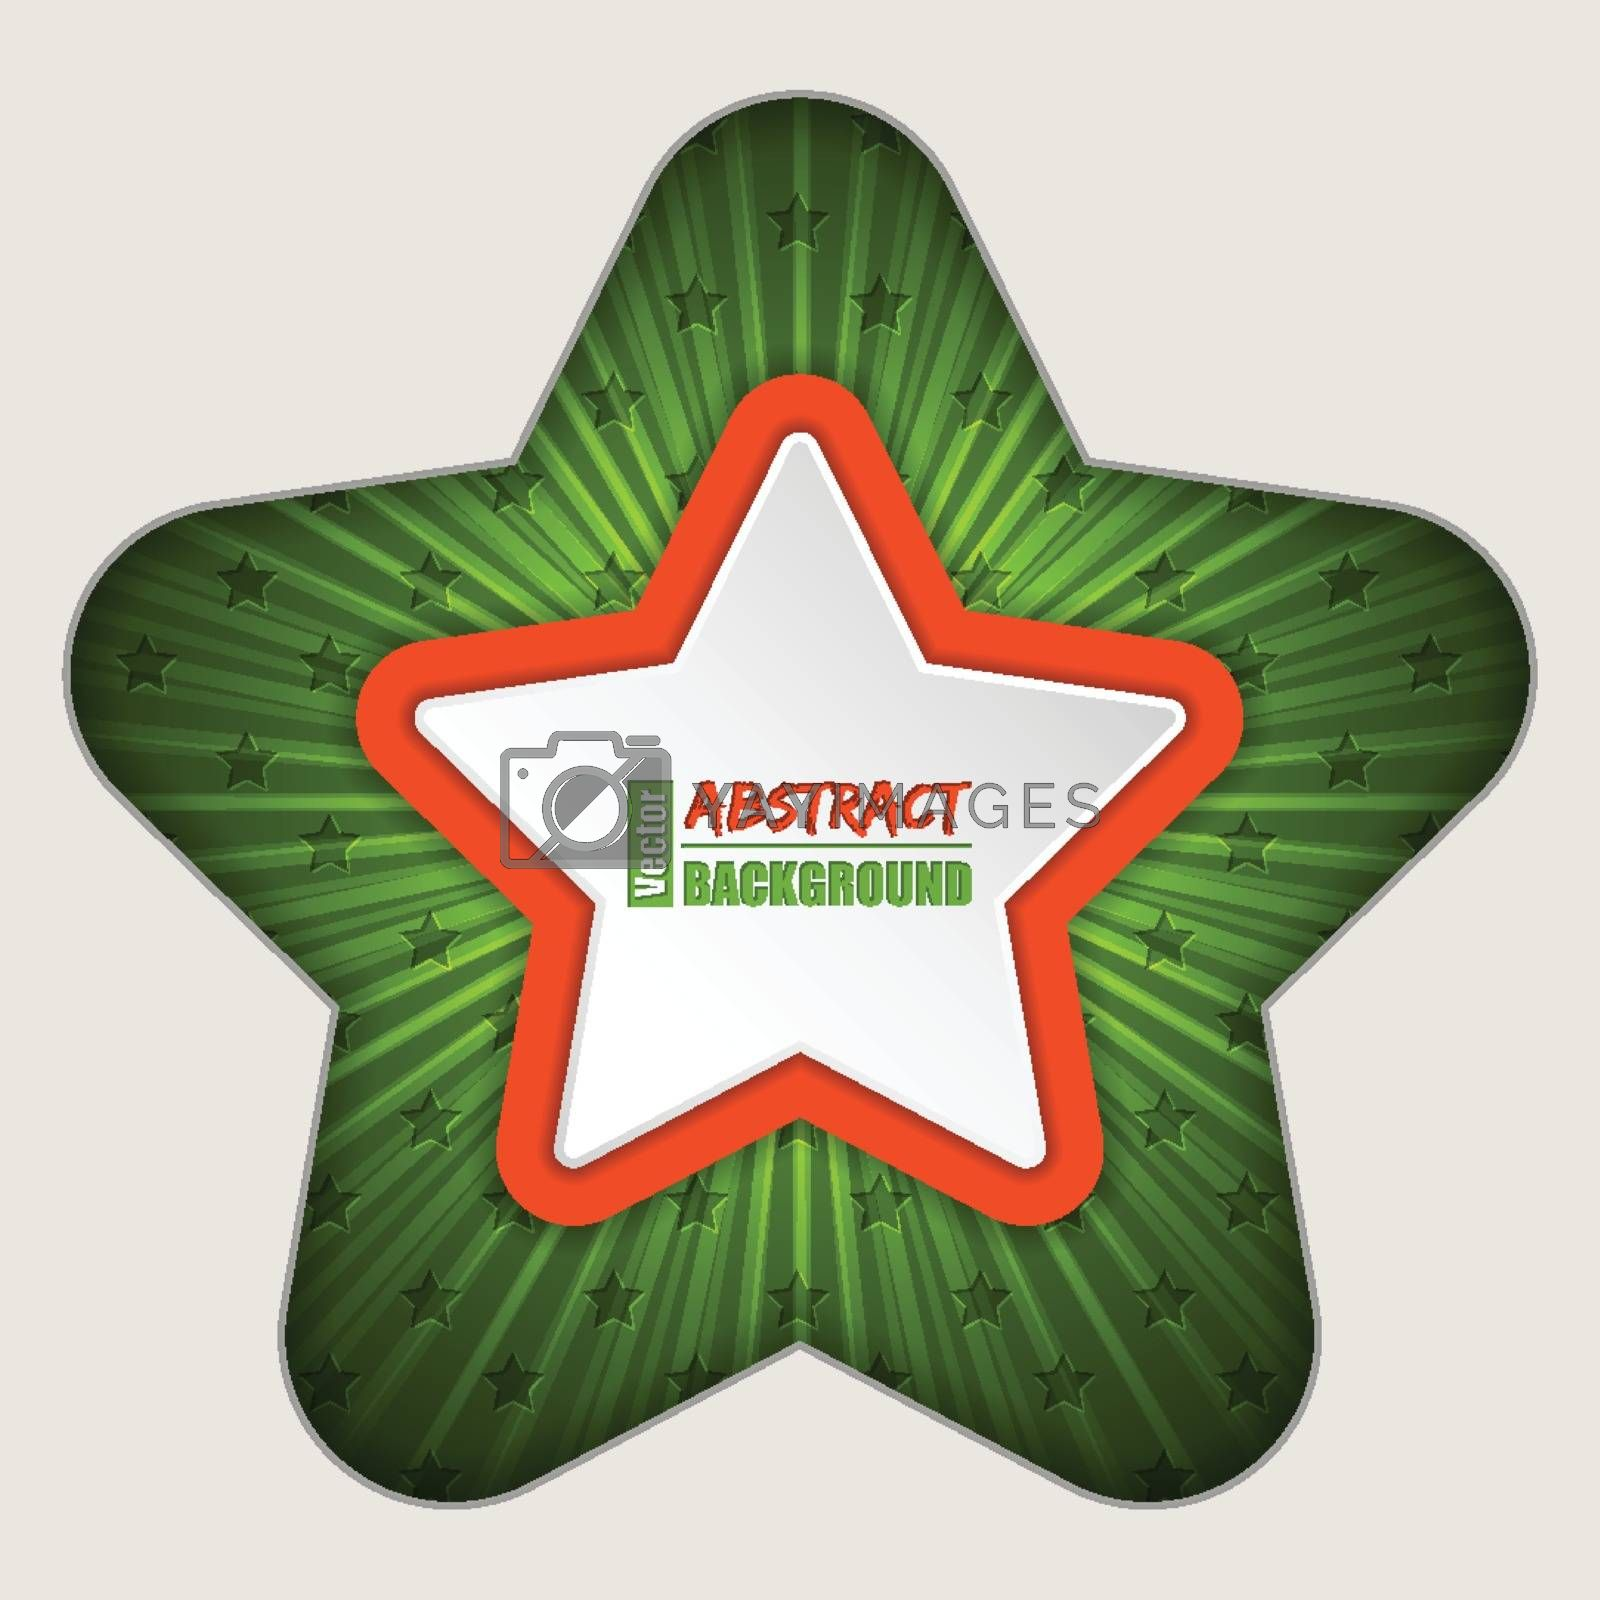 Abstract star brochure background with bursting effect